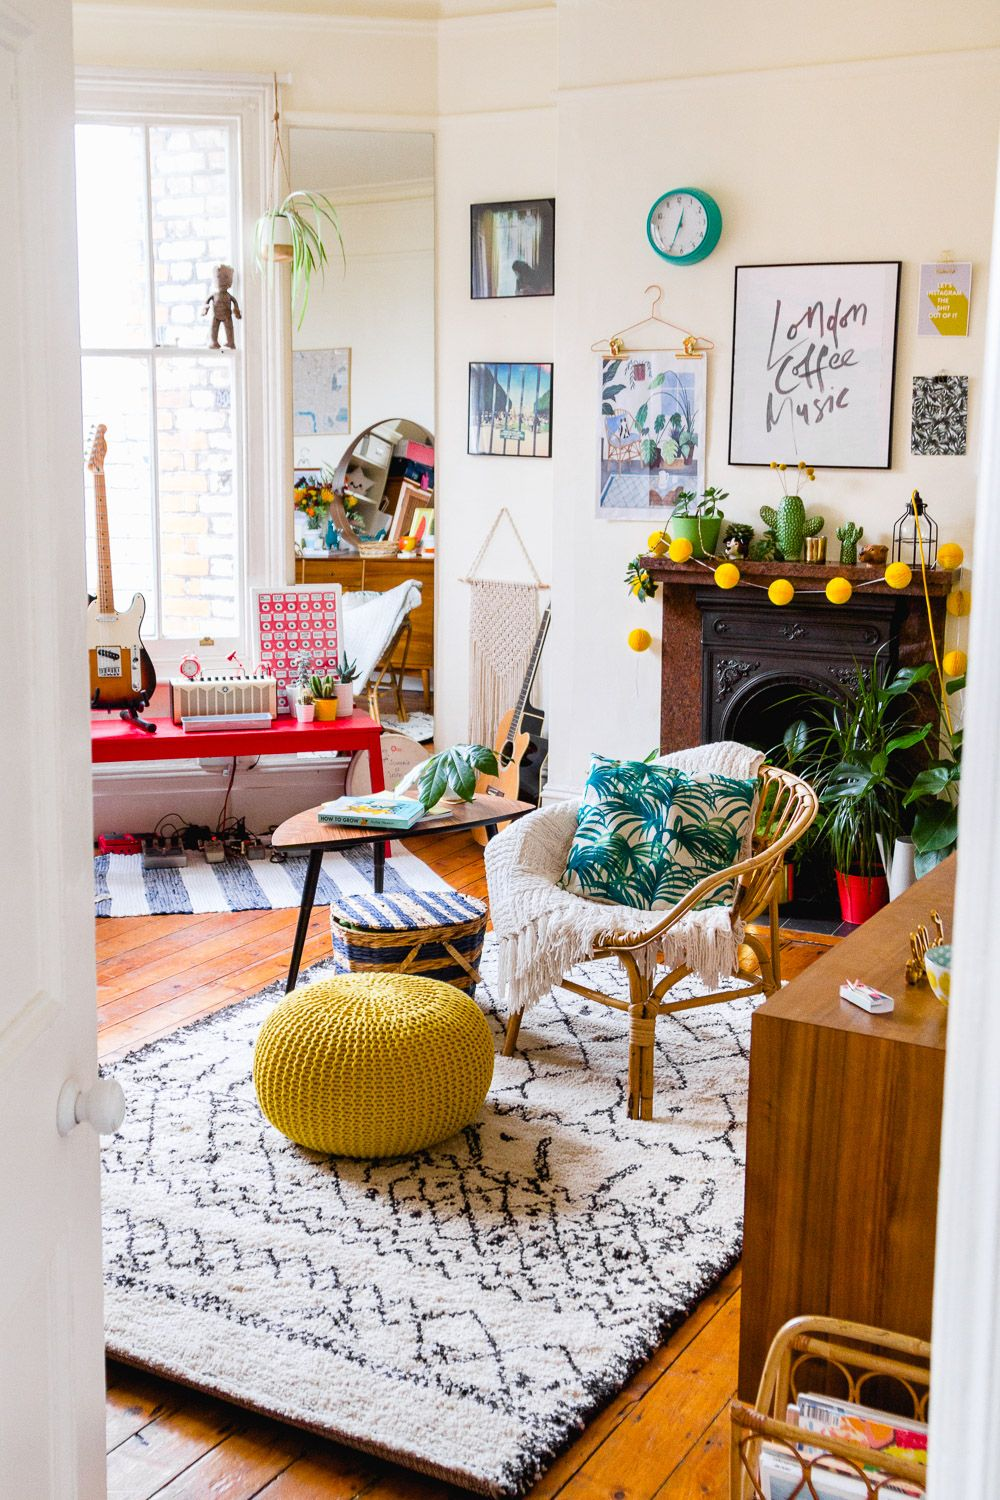 Decorating a shared room | Living room interior, Home ...